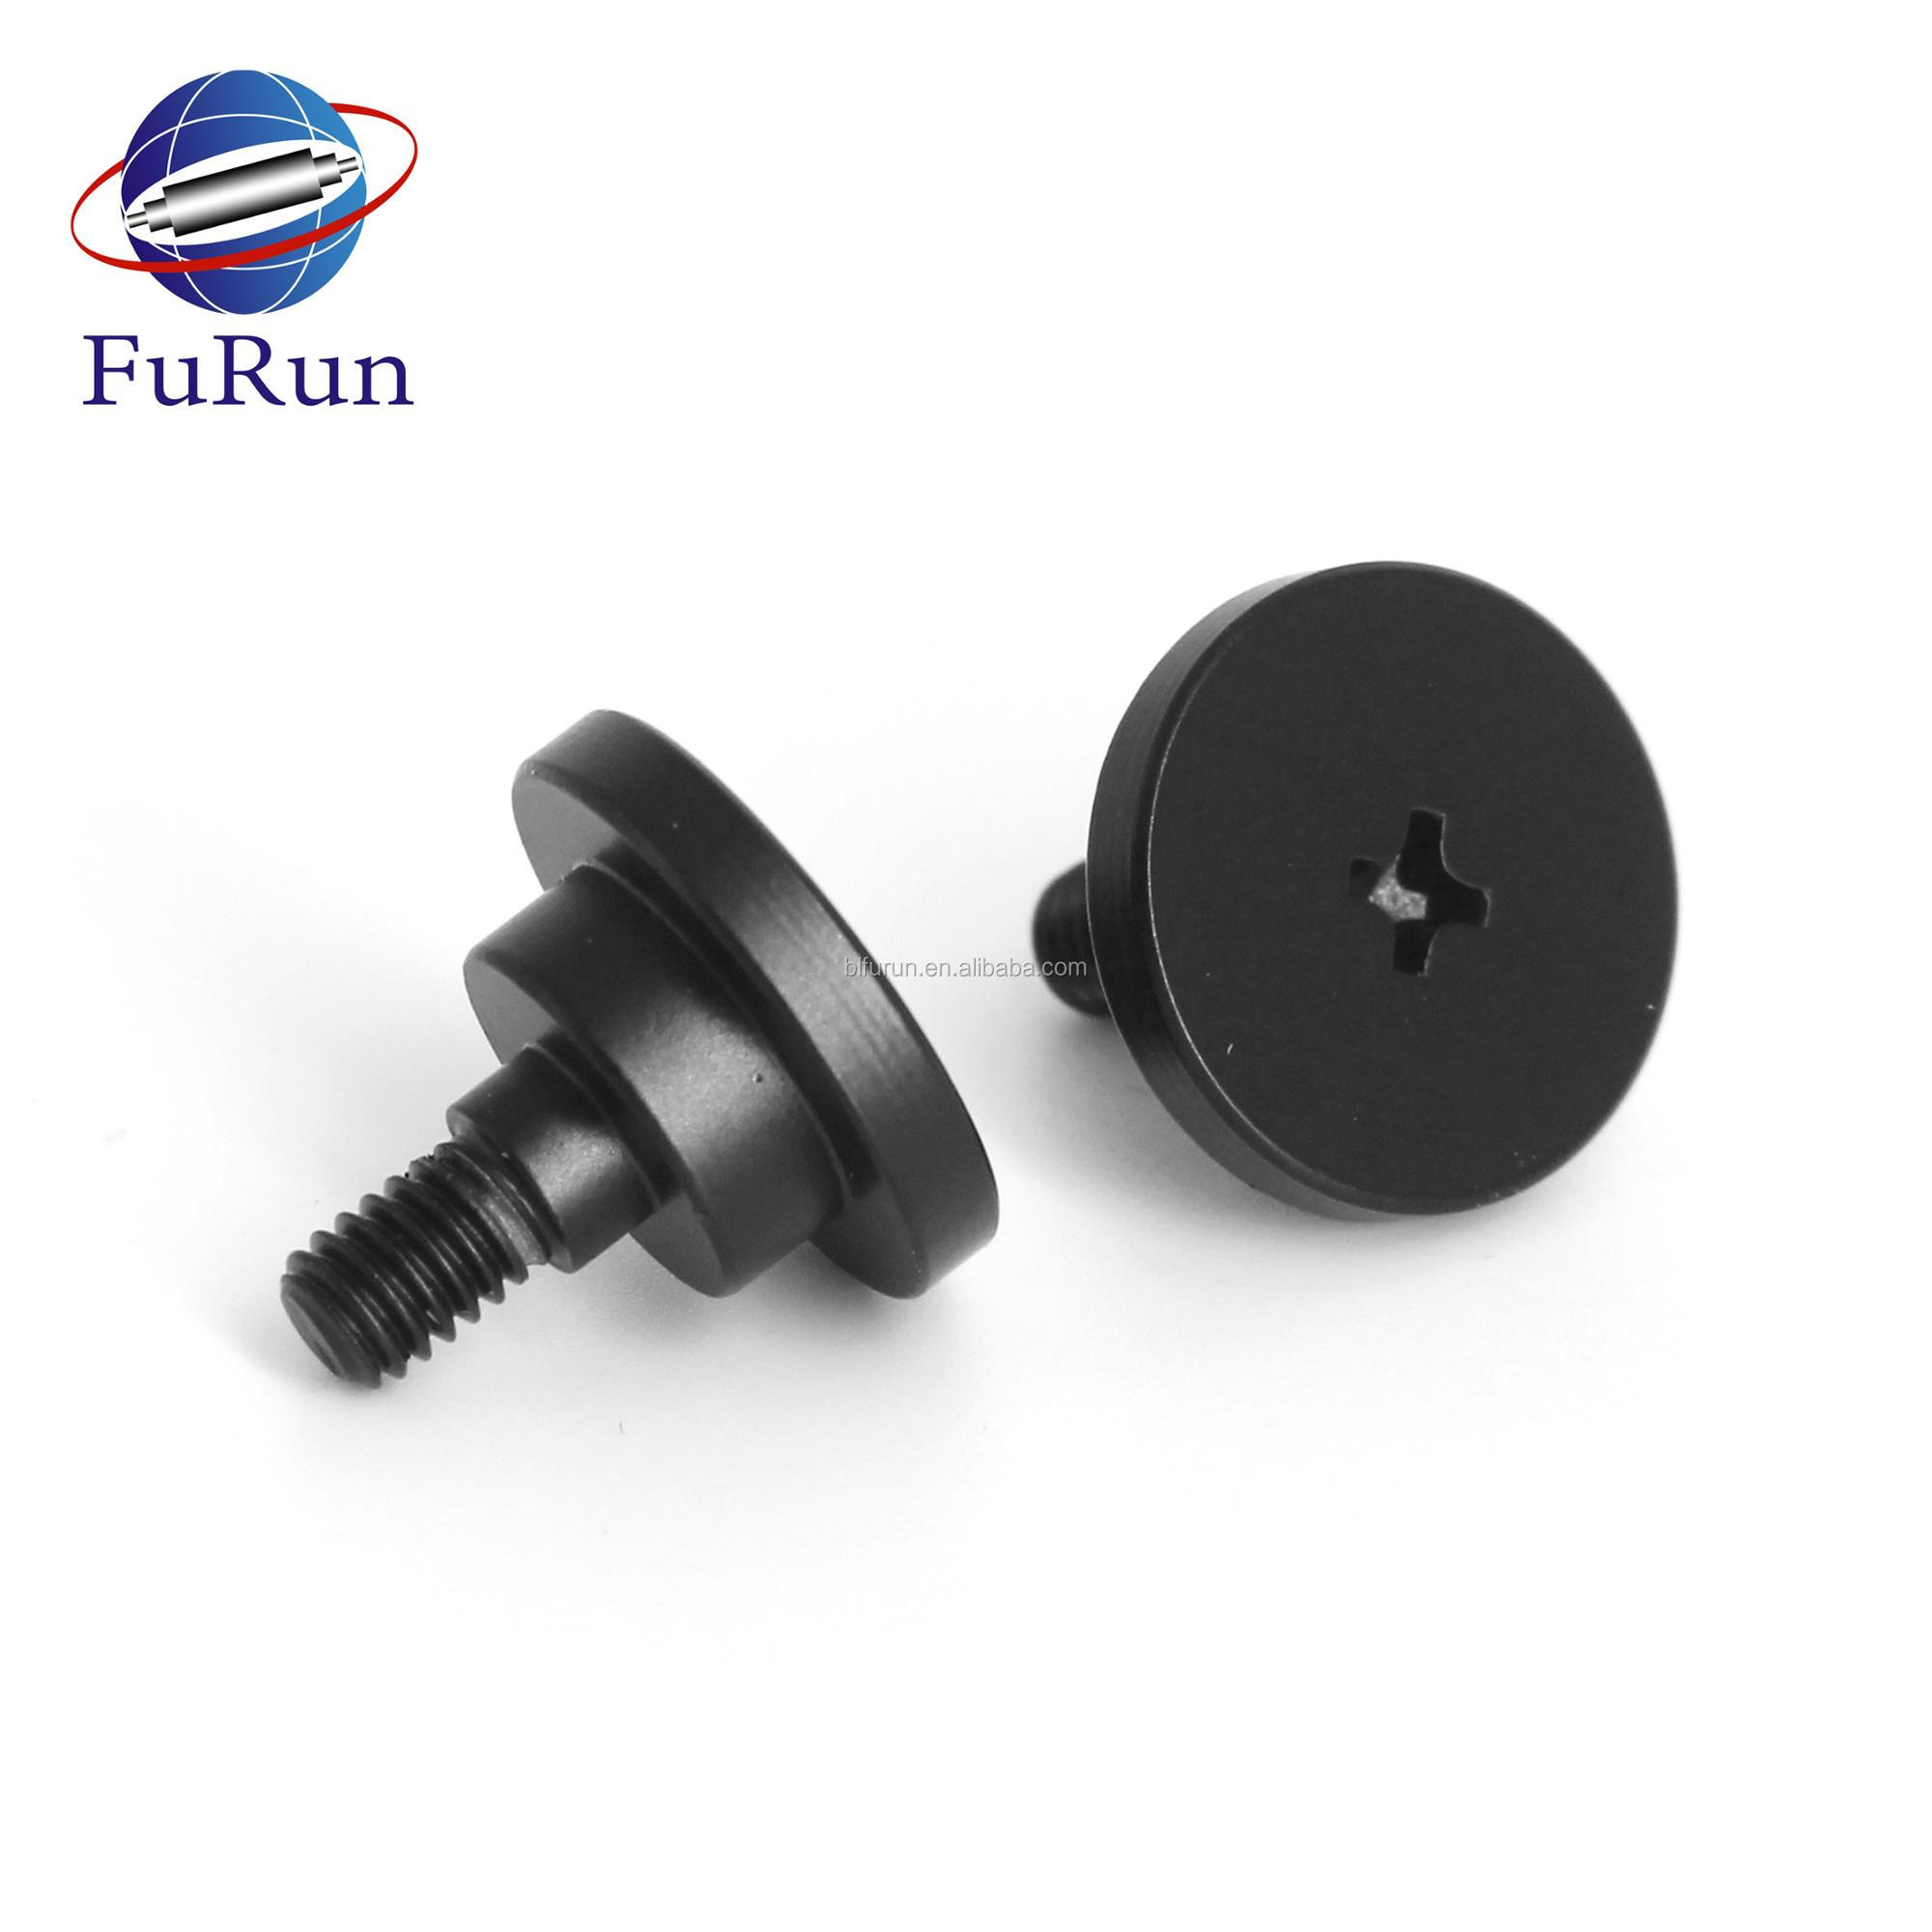 Various customized non-standard fastener, mechanical component, bolts, screw, nuts,fixtures,spare parts